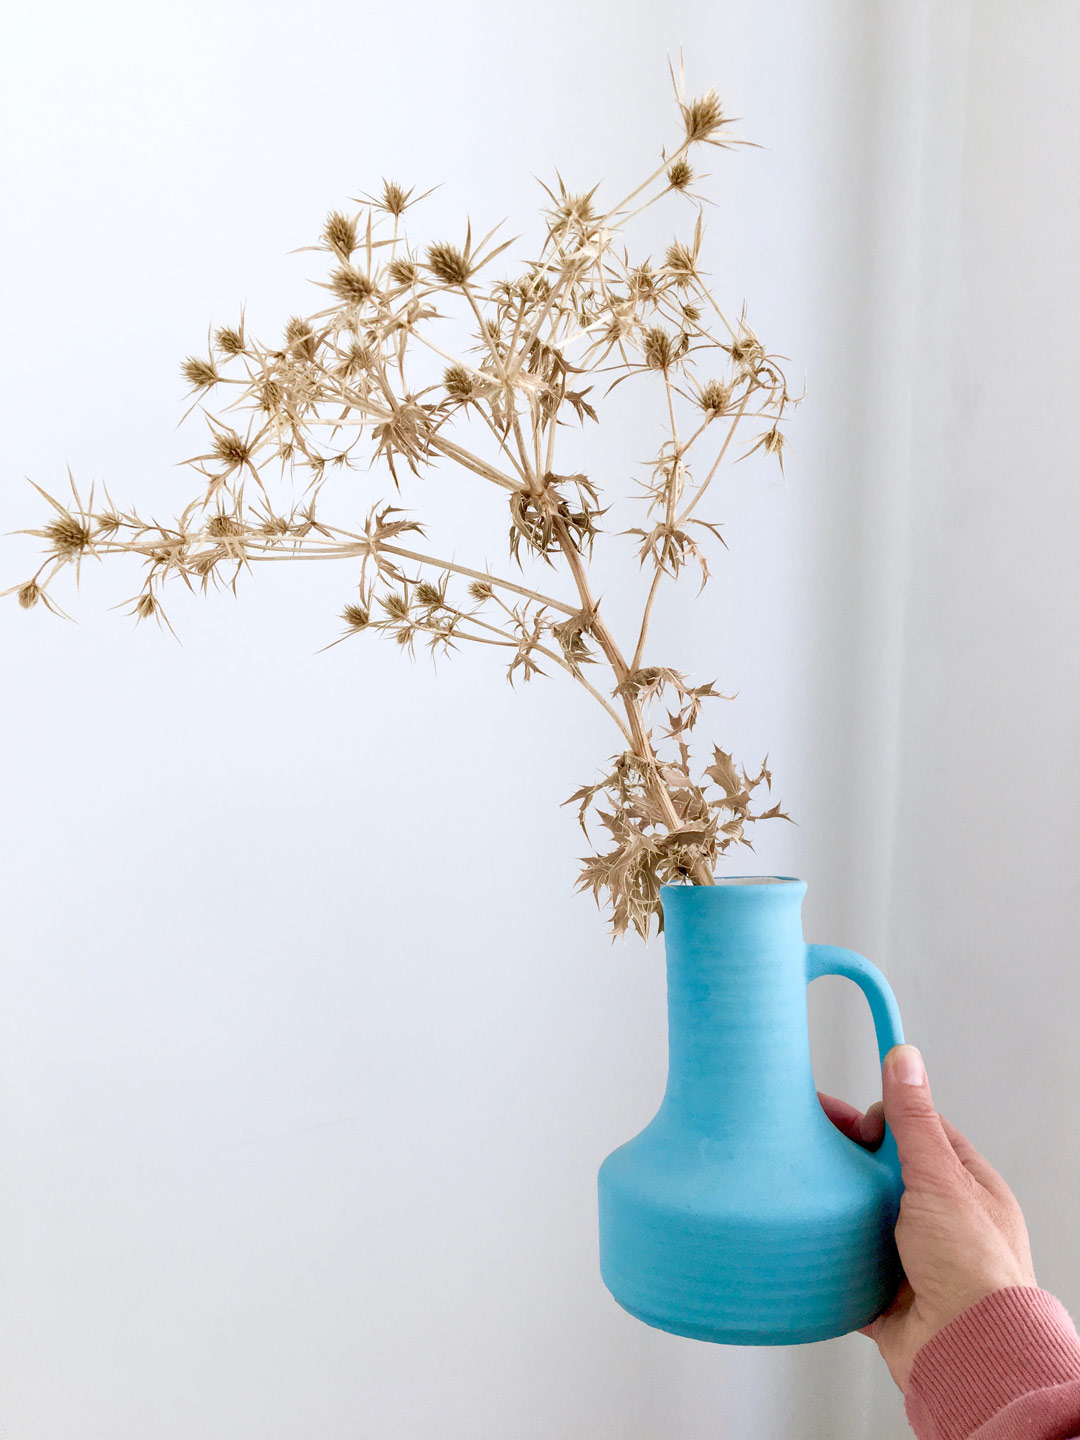 Thistel in blue vase held up by hand